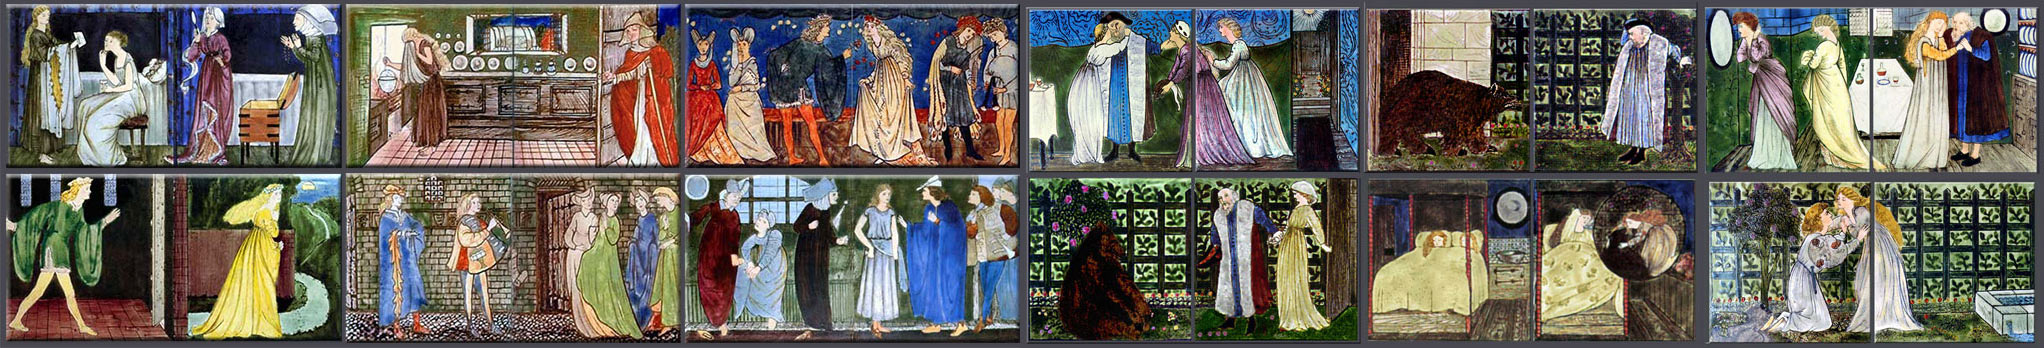 Cinderella and Beuaty and the Beast reproduction tile panels by Edward Burne-Jones for Morris and Co., 1862